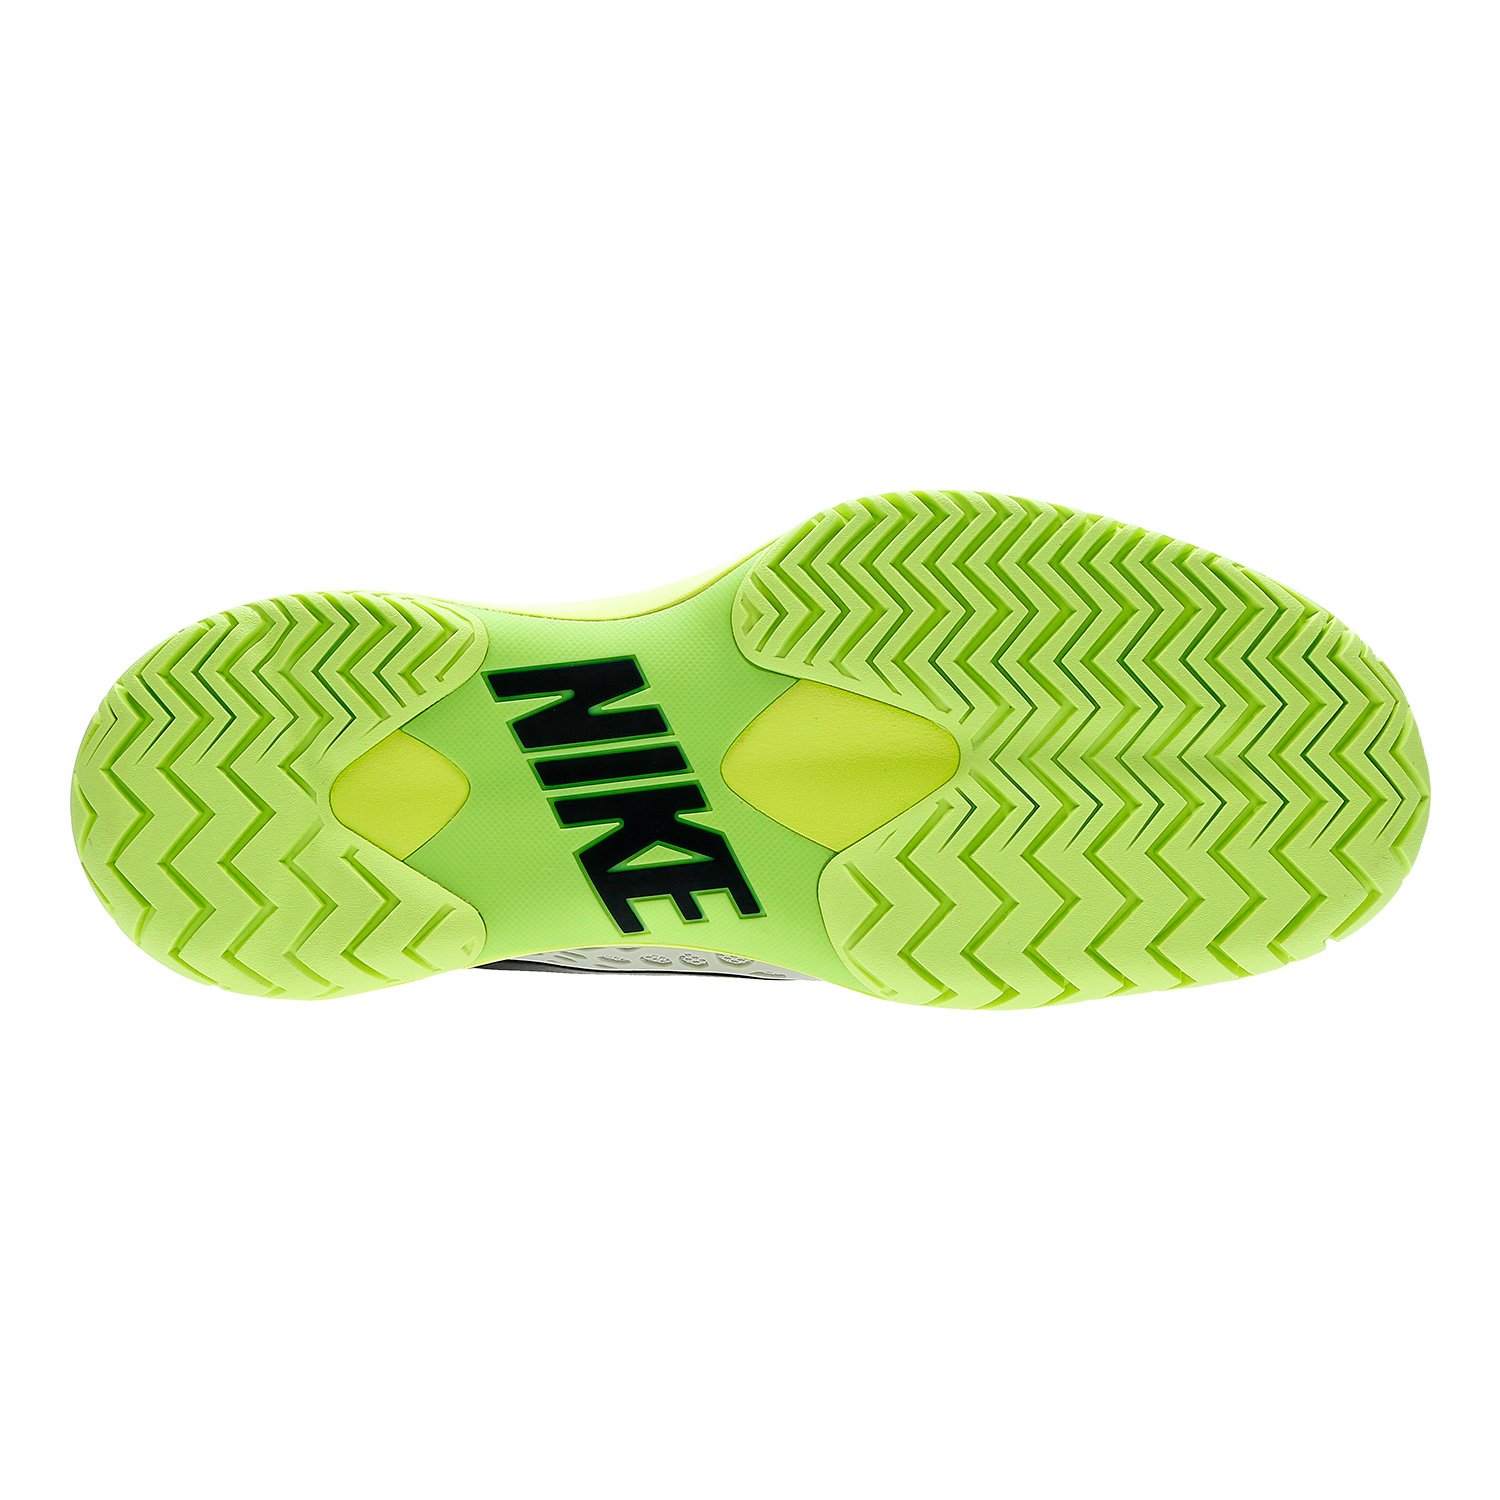 Кроссовки NIKE M AIR ZOOM CAGE 3 HC 2018 GR/BL. Фото ¹4